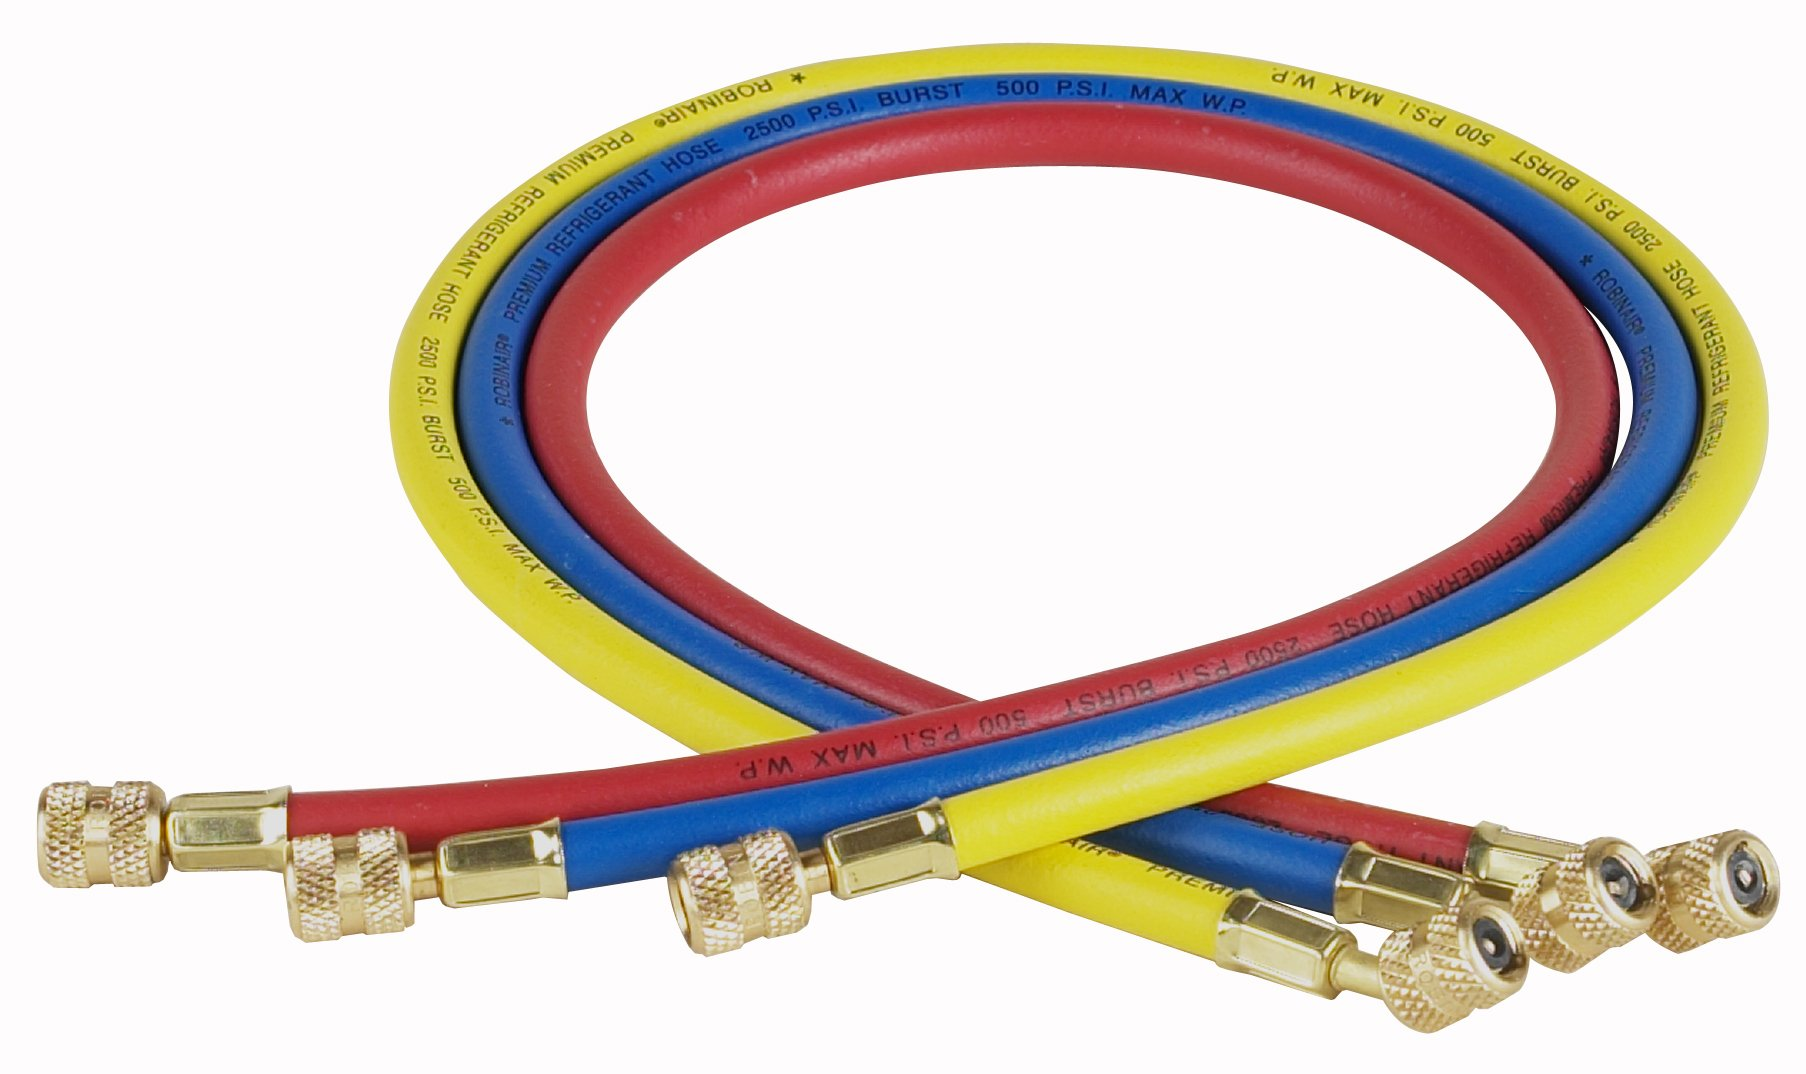 Robinair (30036) 1/4'' Standard Hoses with Standard Fittings Set - 36'', Set of 3